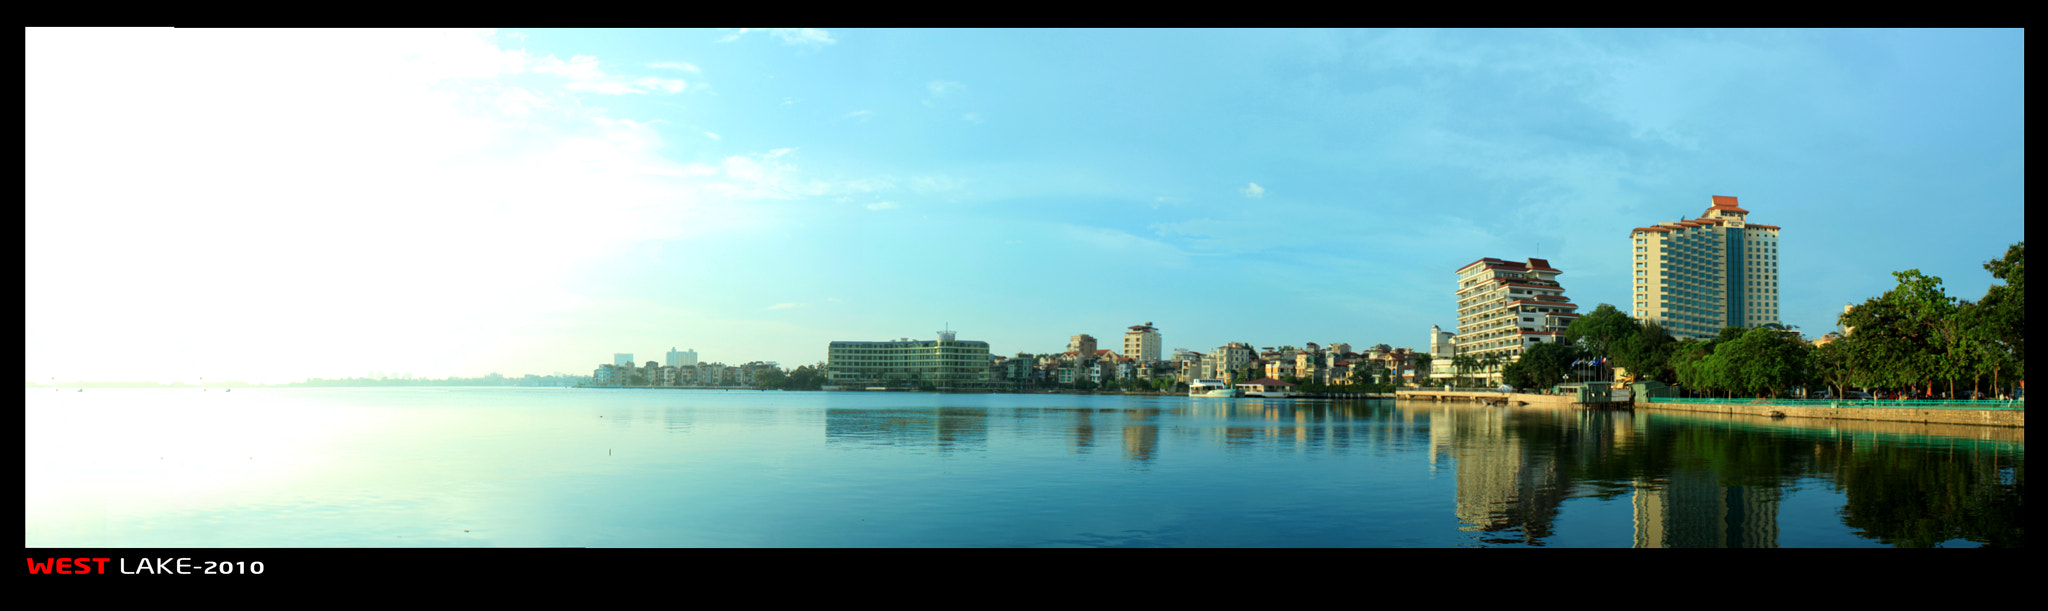 Photograph A corner of West Lake - HN by Việt Lê on 500px